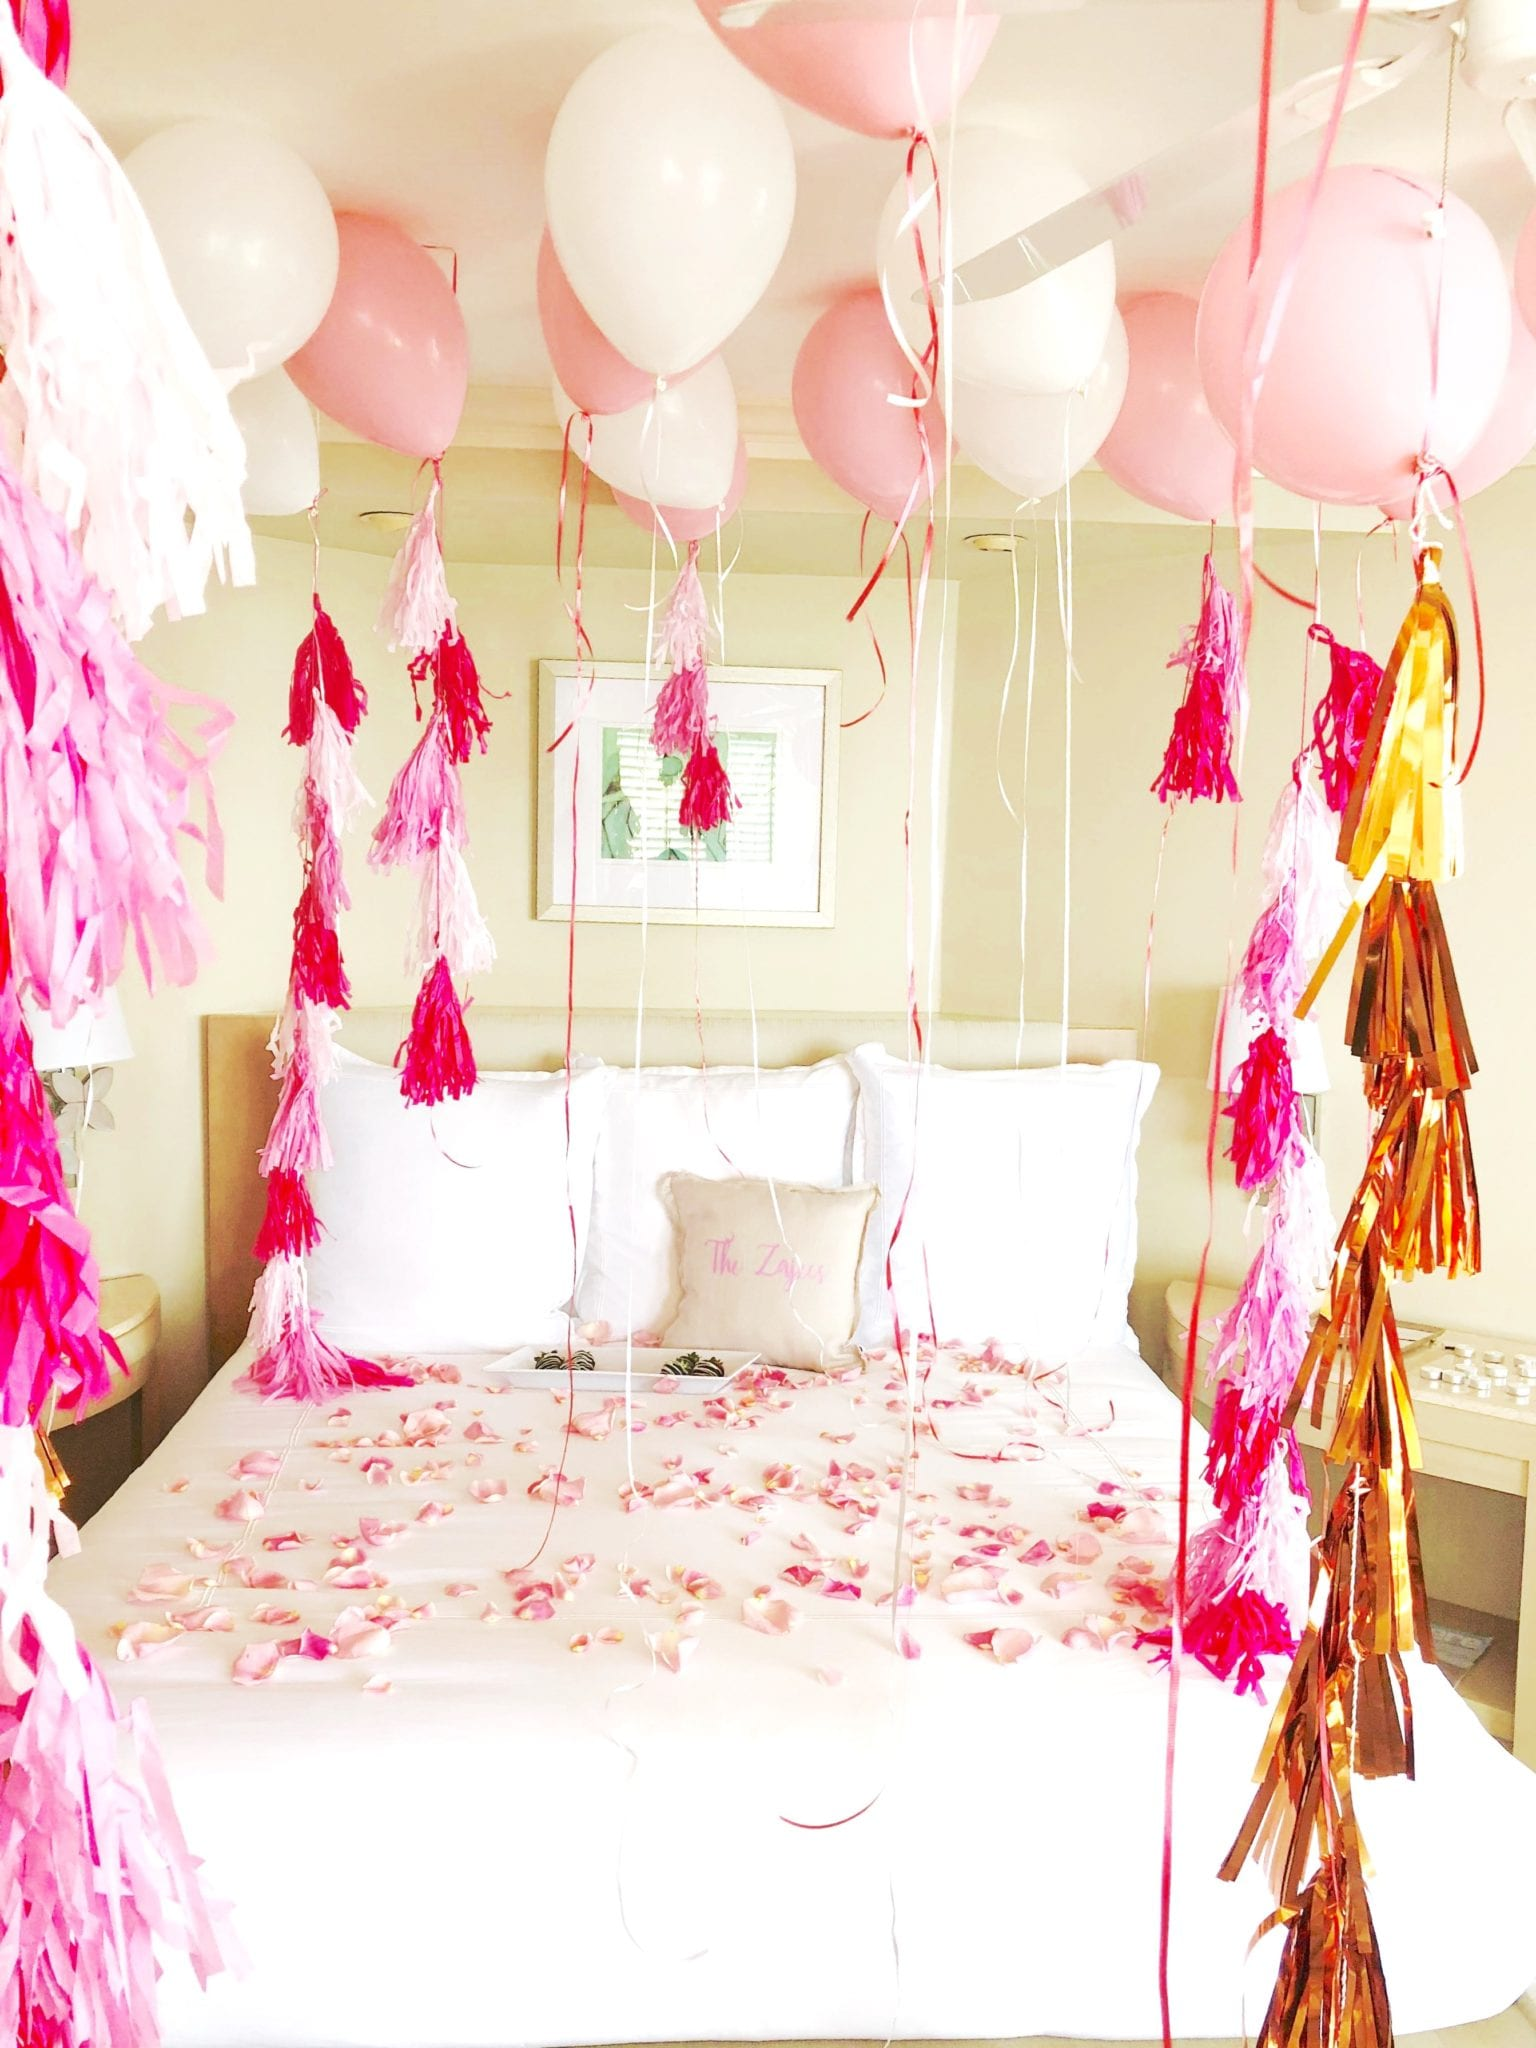 Order: Special Occasion Hotel Room Decorating Package